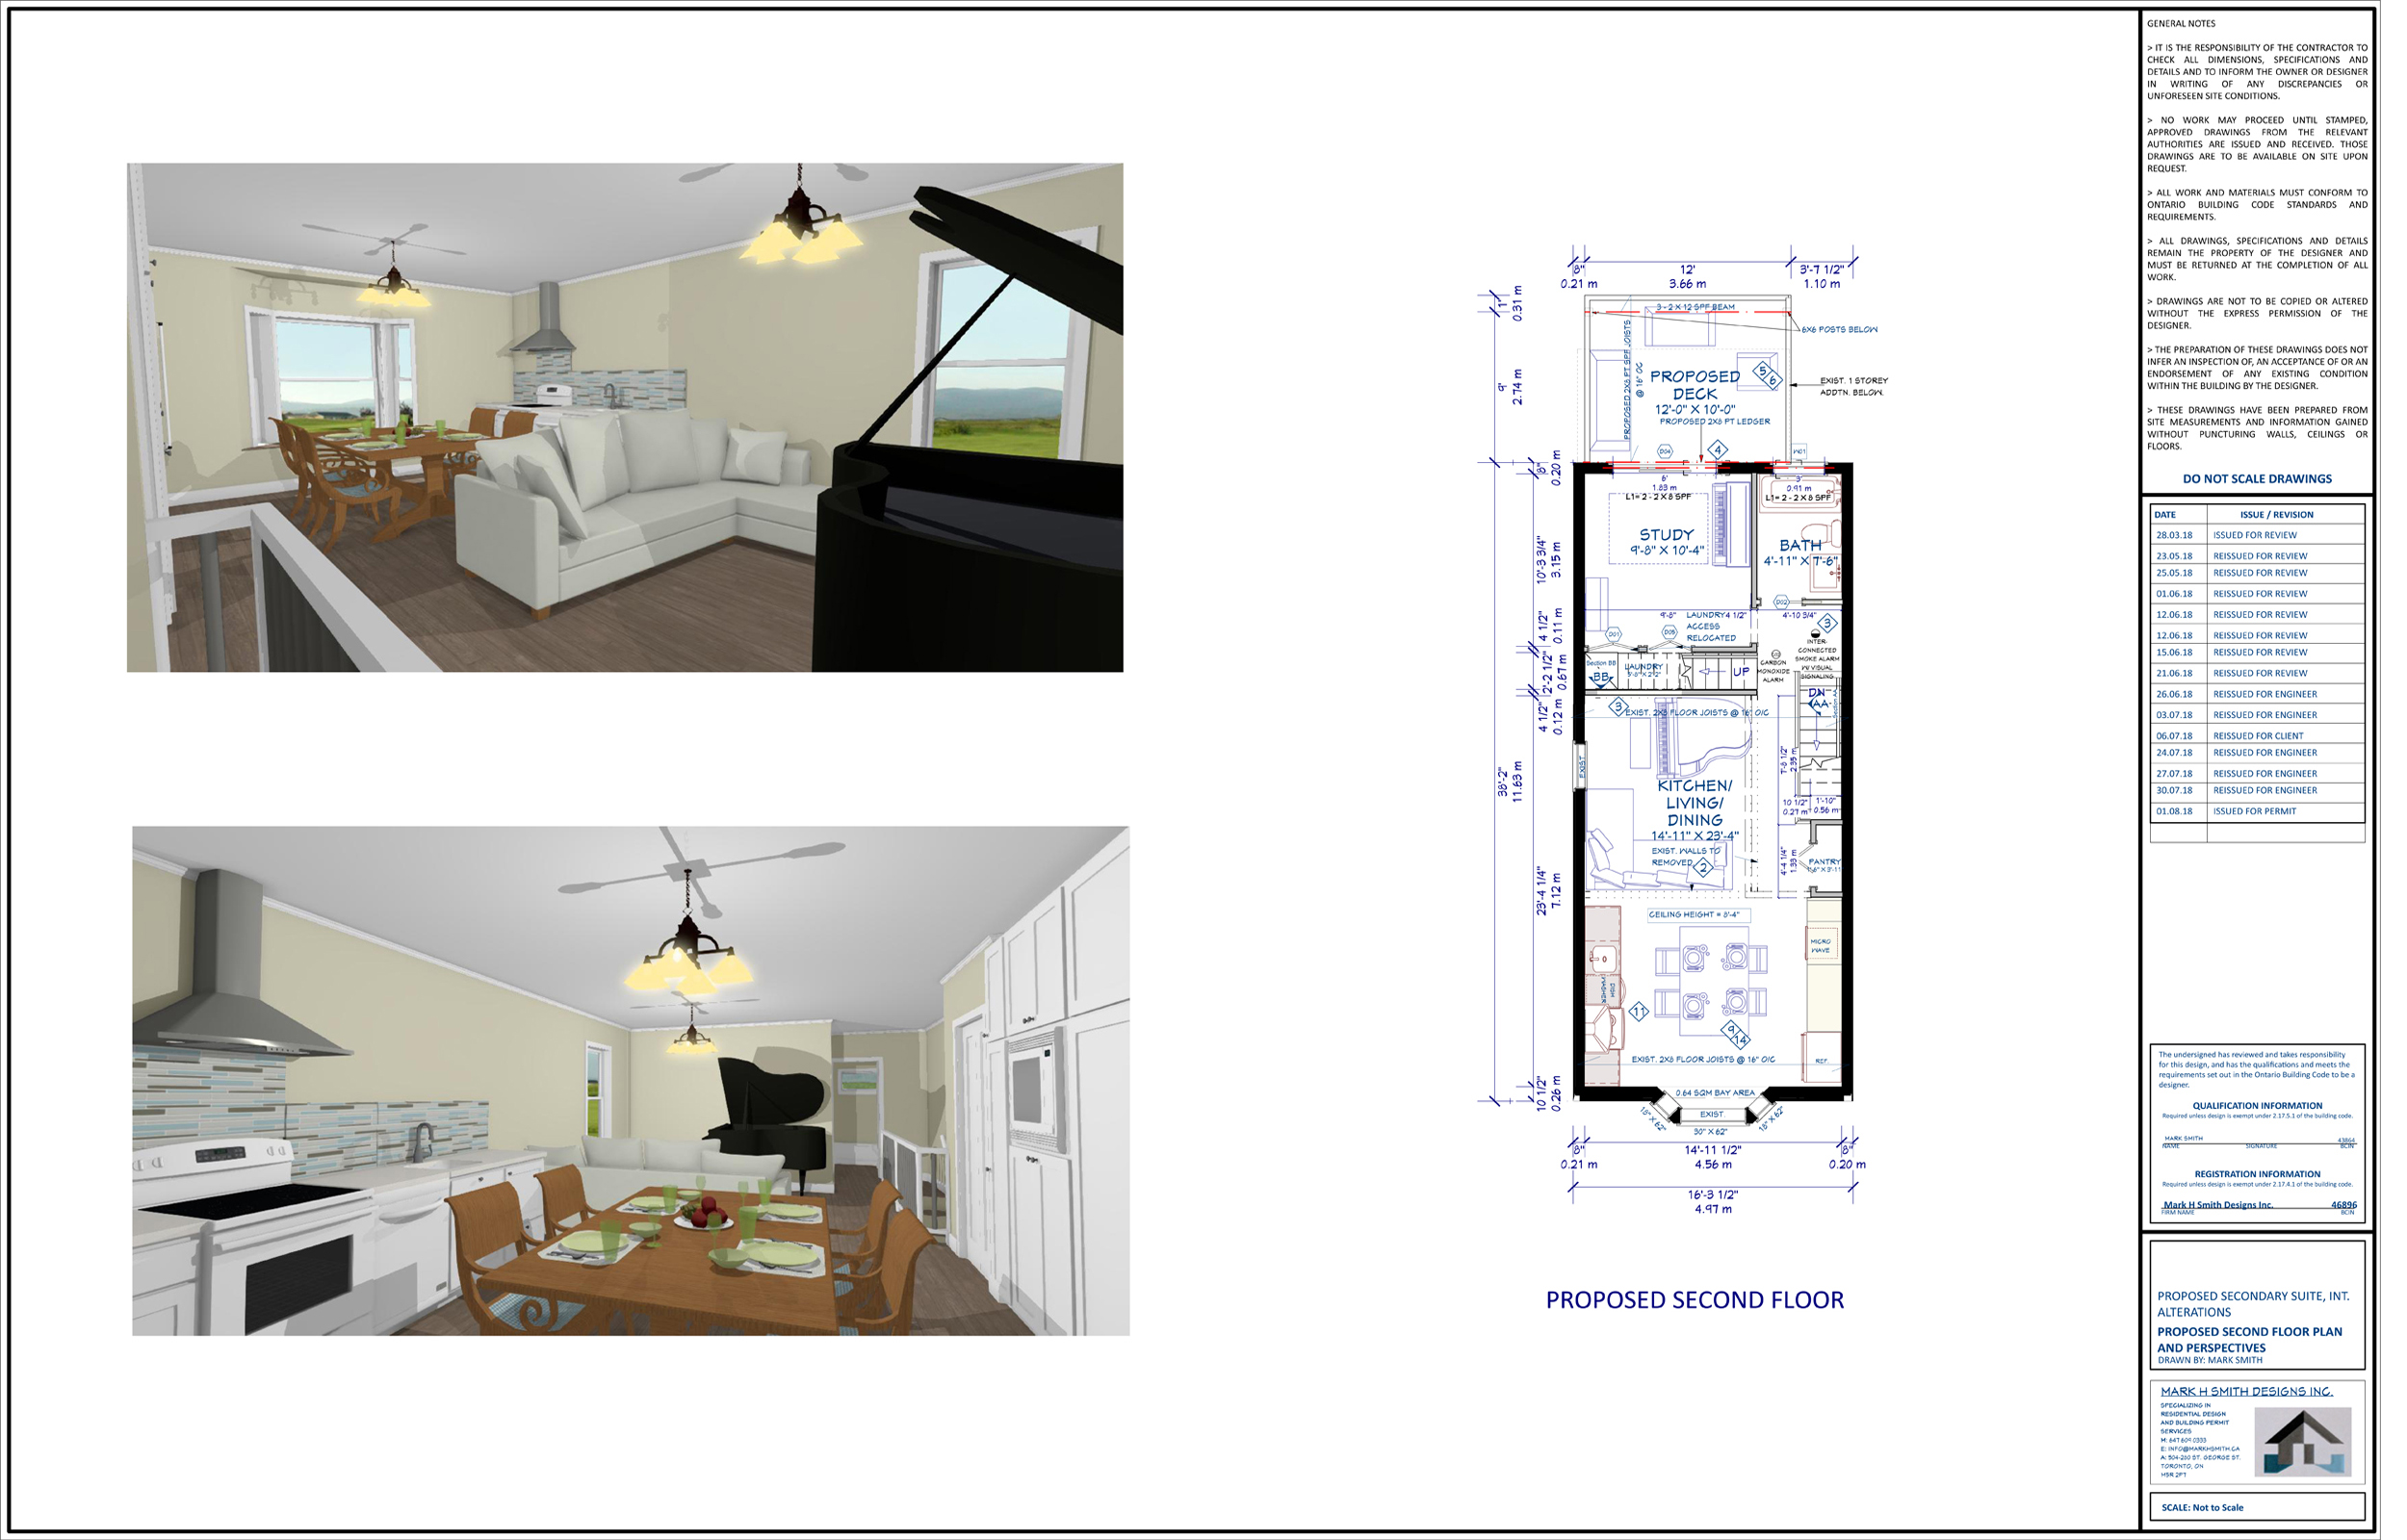 Toronto Building permit- Interior Renovation Plans